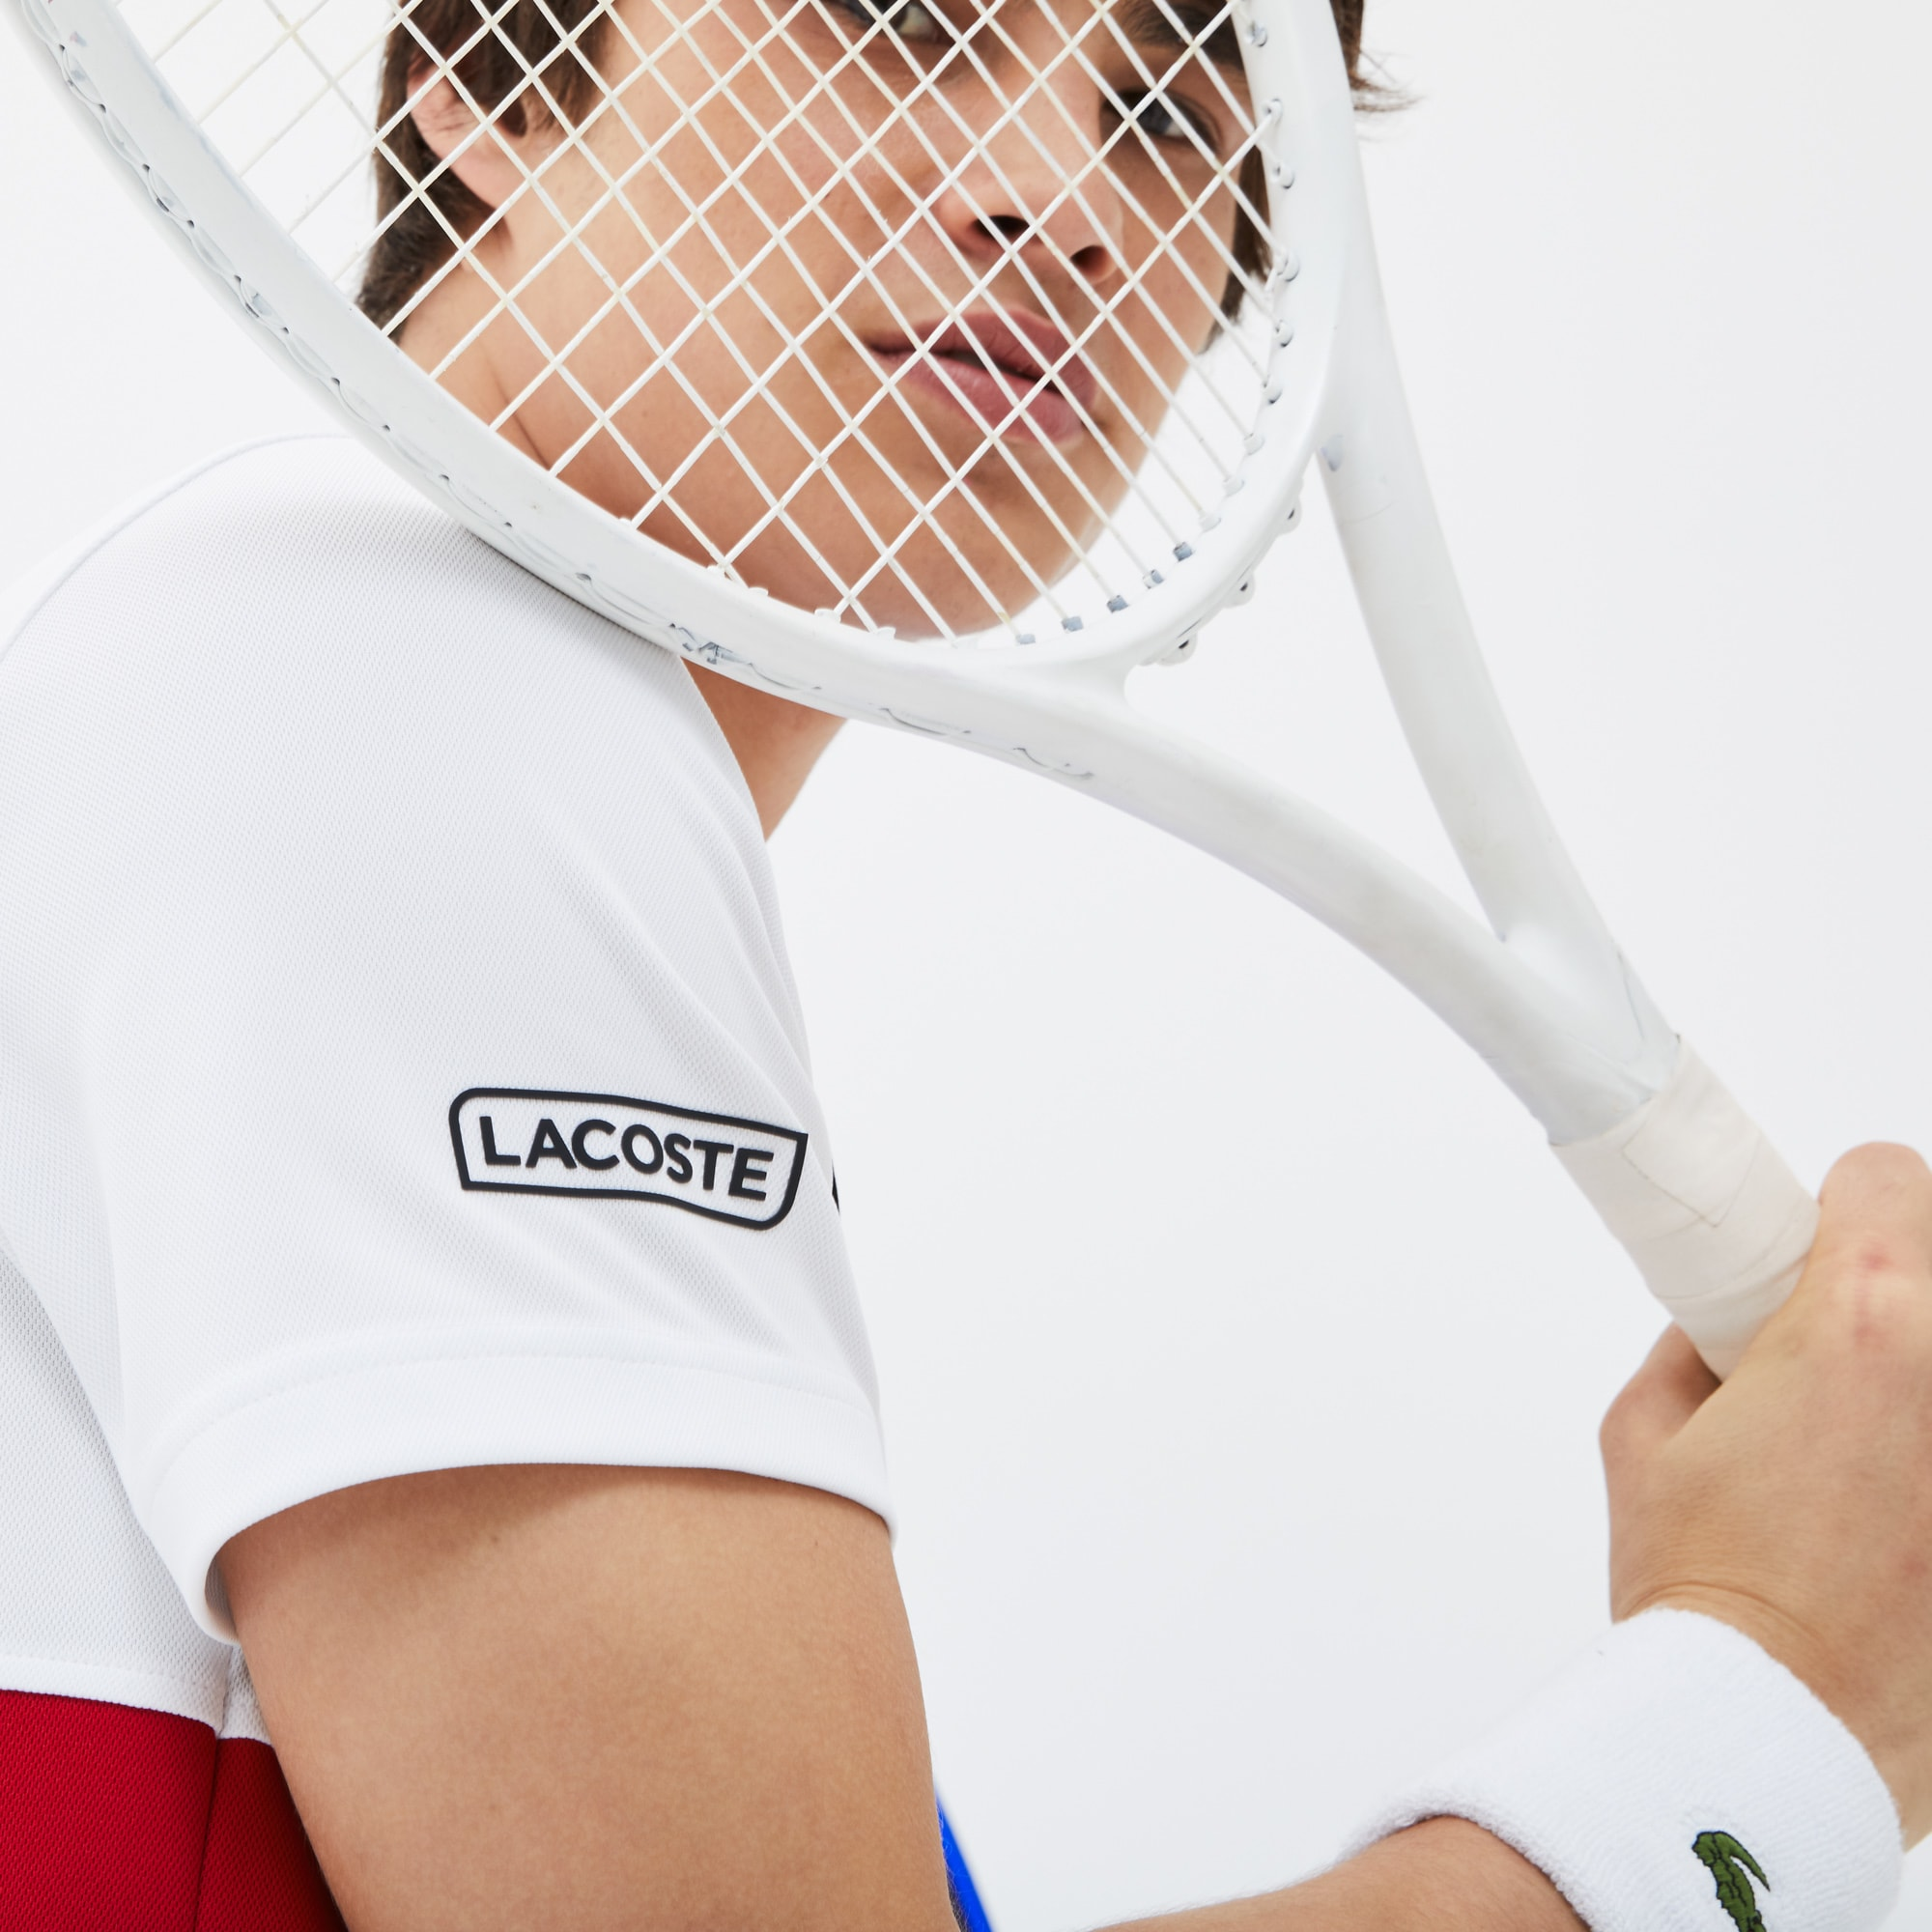 Polo LACOSTE SPORT COLLECTION NOVAK DJOKOVIC en piqué technique